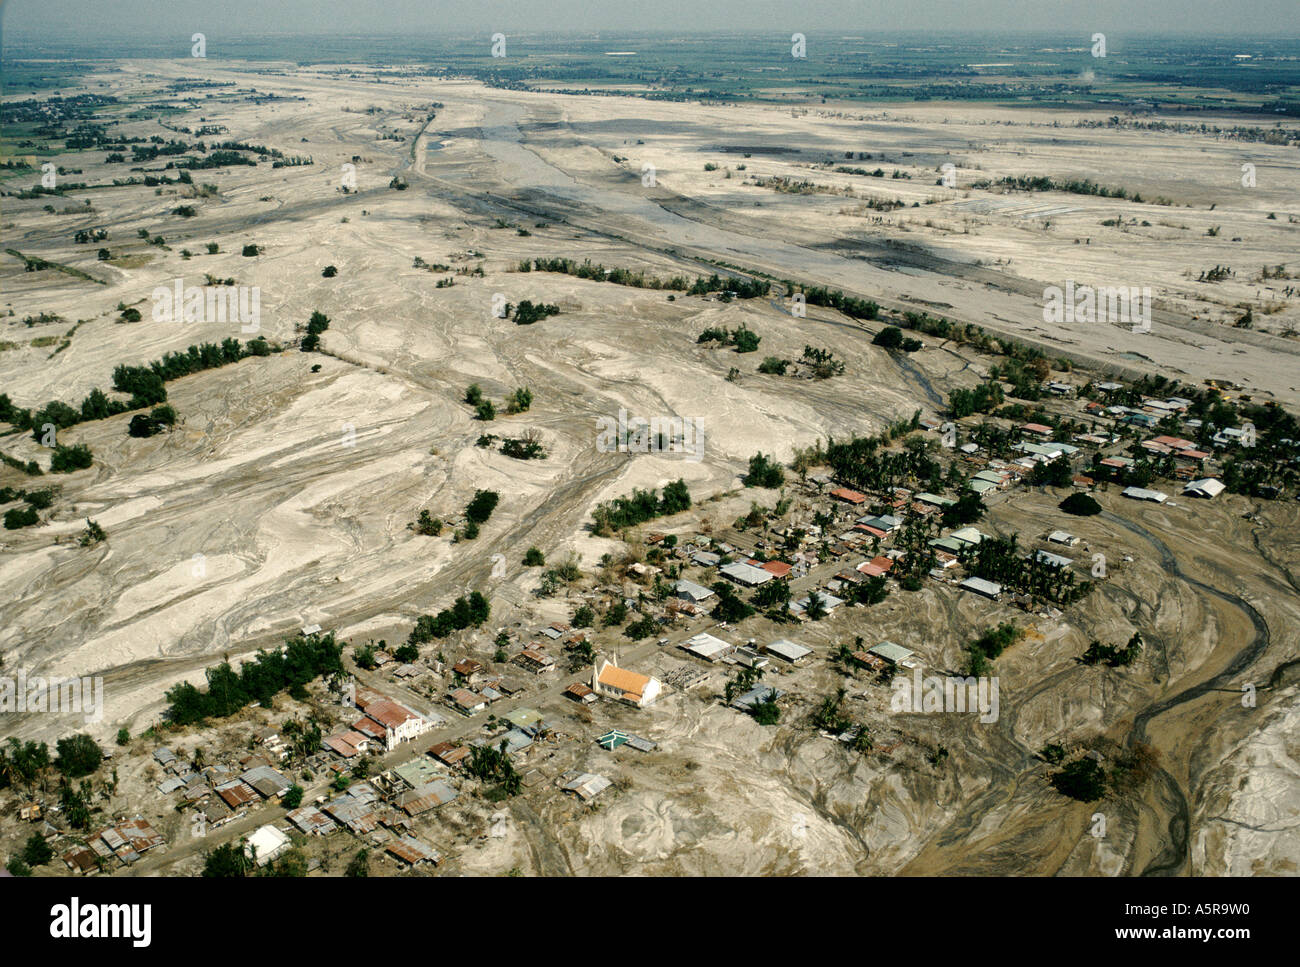 MOUNT PINATUBO DISASTER FEBRUARY 1991 AERIAL VIEW OF THE TOWN OF SANTA RITA PAMPANGA PROVINCE PARTLY SUBMERGED AND INHABITED BY - Stock Image